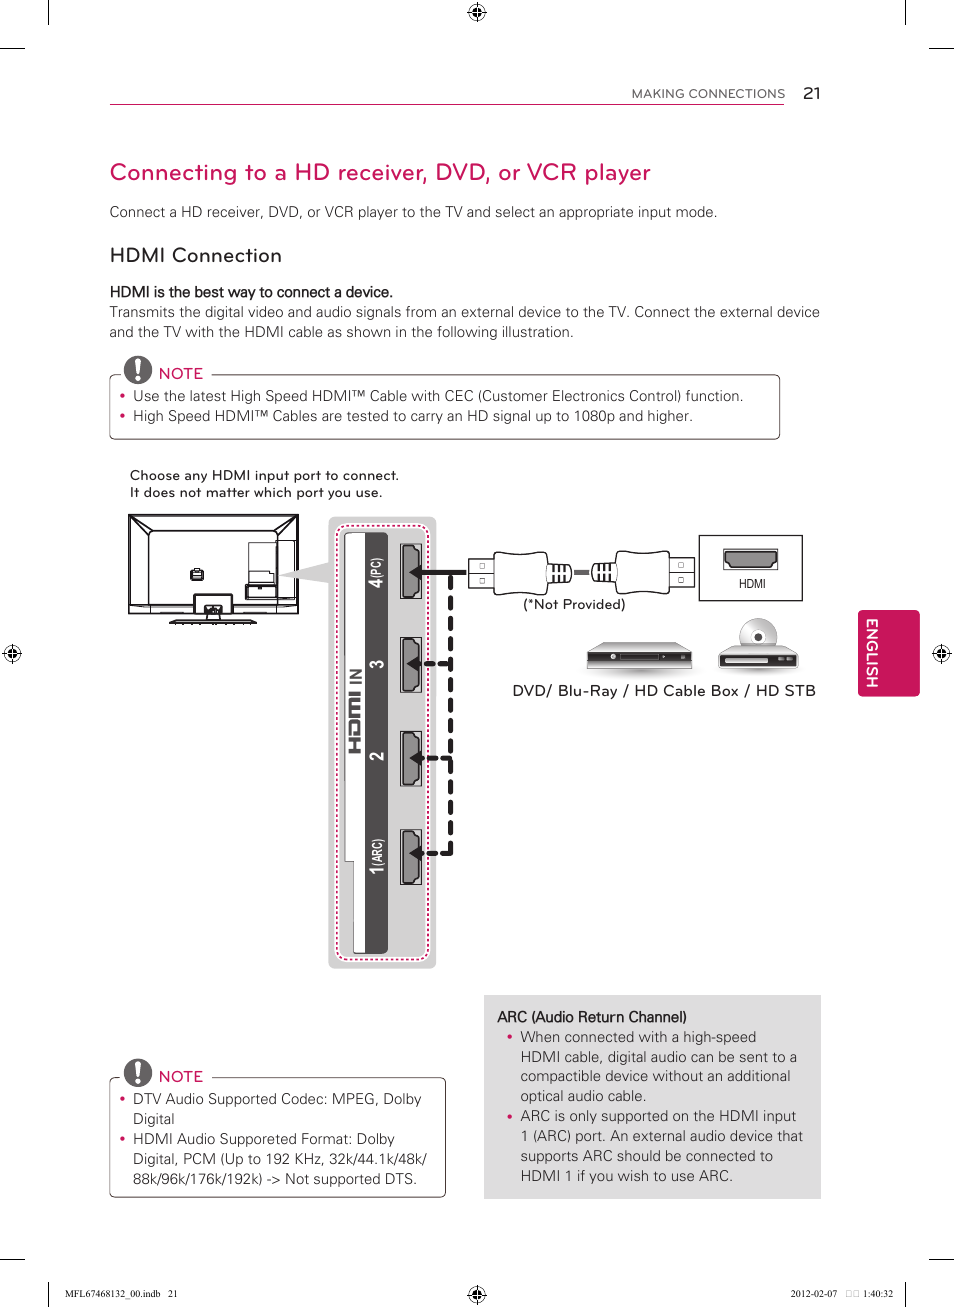 Lg Tv And Vcr Wiring Diagram Libraries Digital Audio Cable Connecting To A Hd Receiver Dvd Or Player Hdmi Connectionconnecting